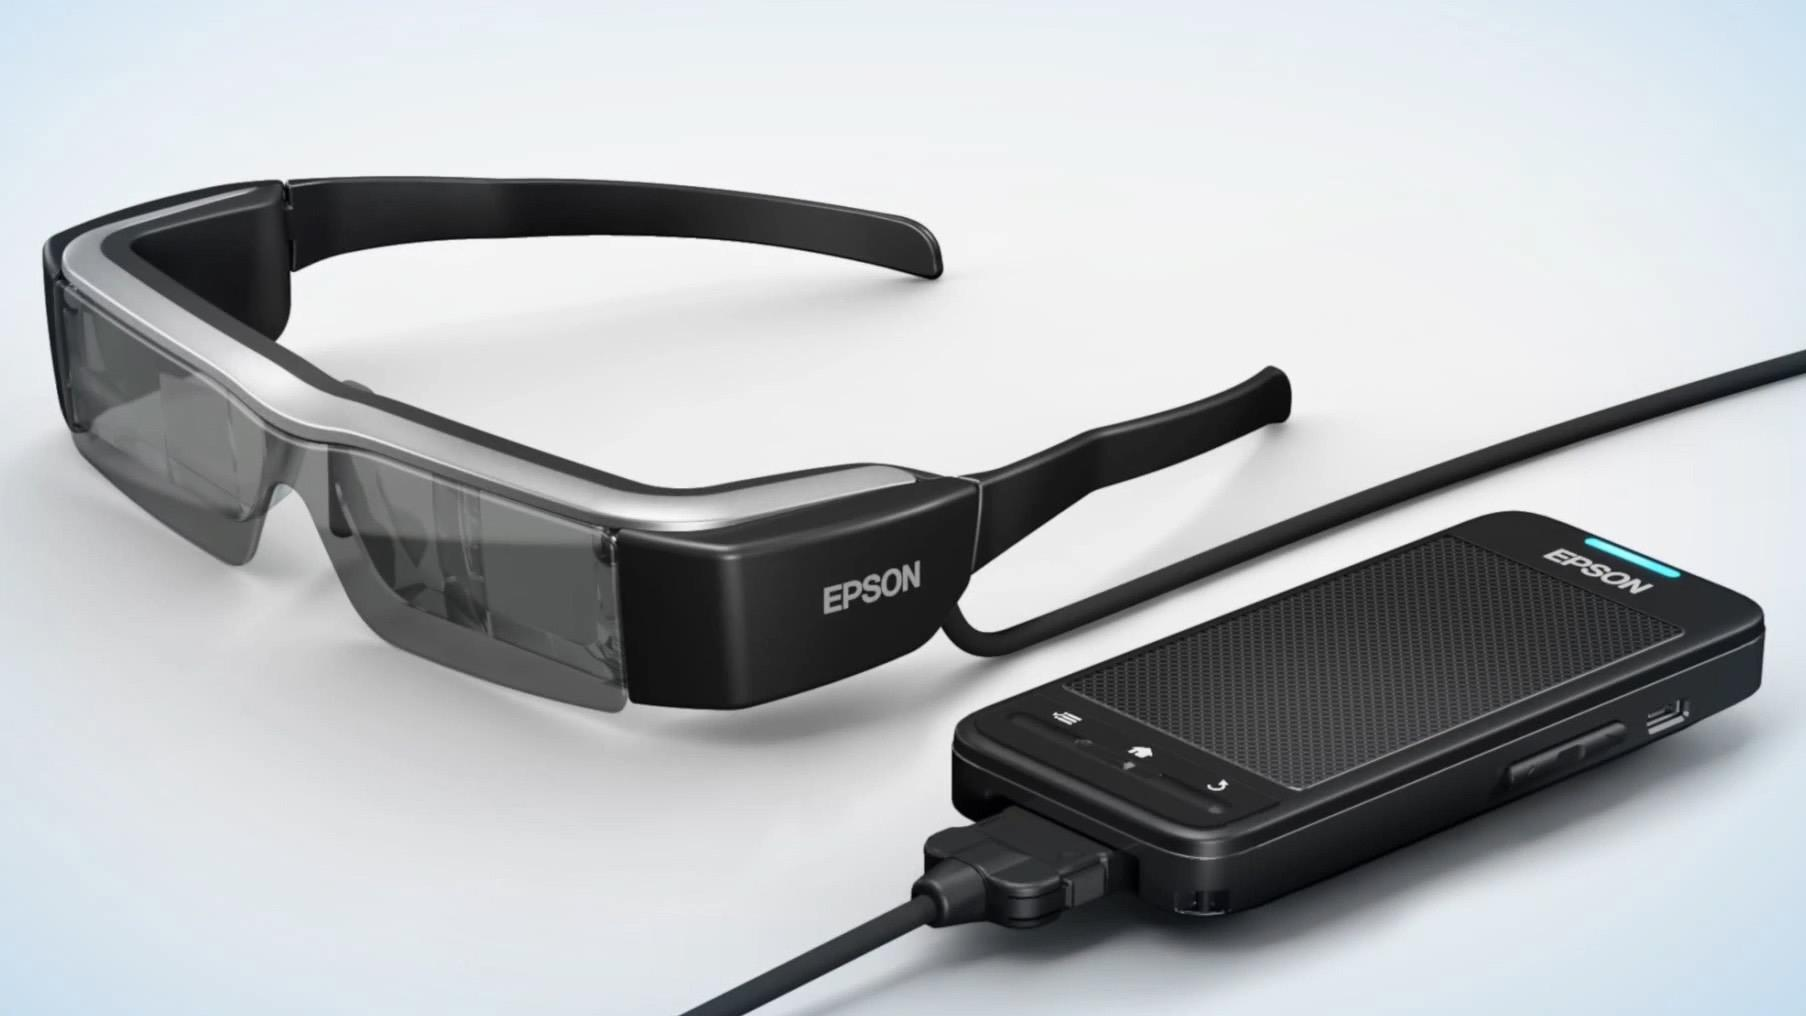 Oculus Rift Meets Google Glass With Epsons Moverio BT 200